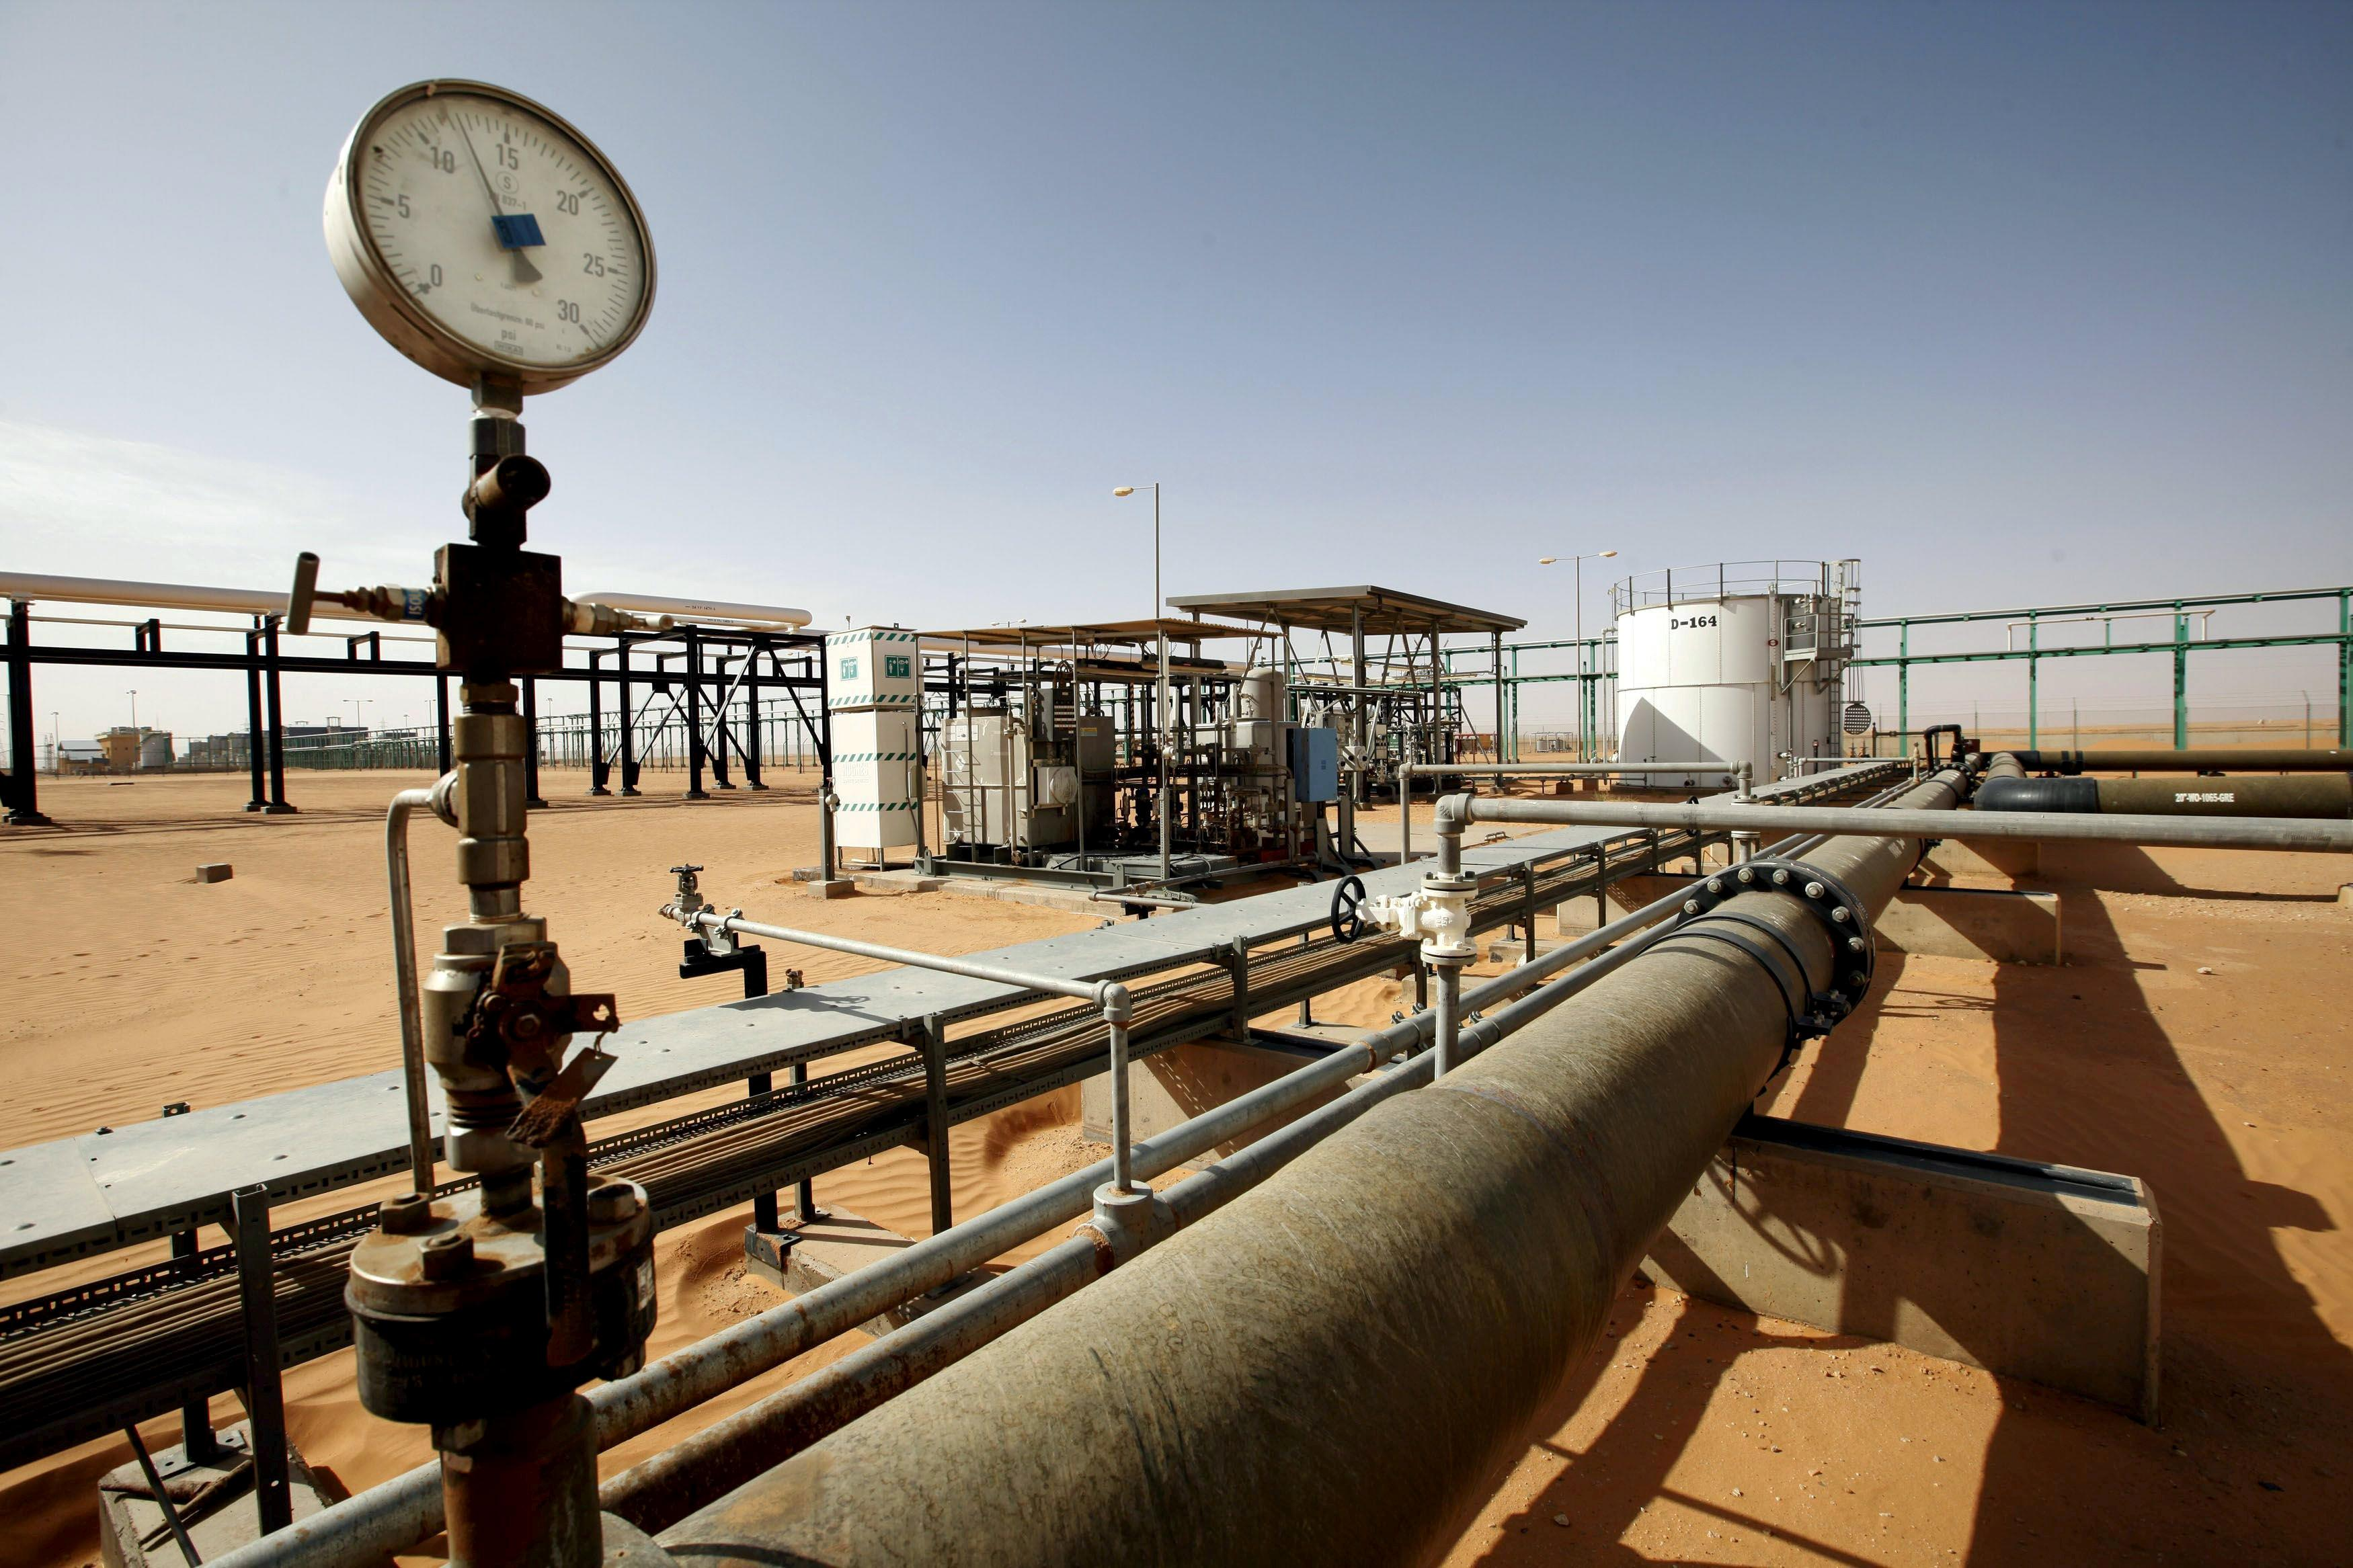 Explainer: What's at stake for Libya's oil as conflict flares?